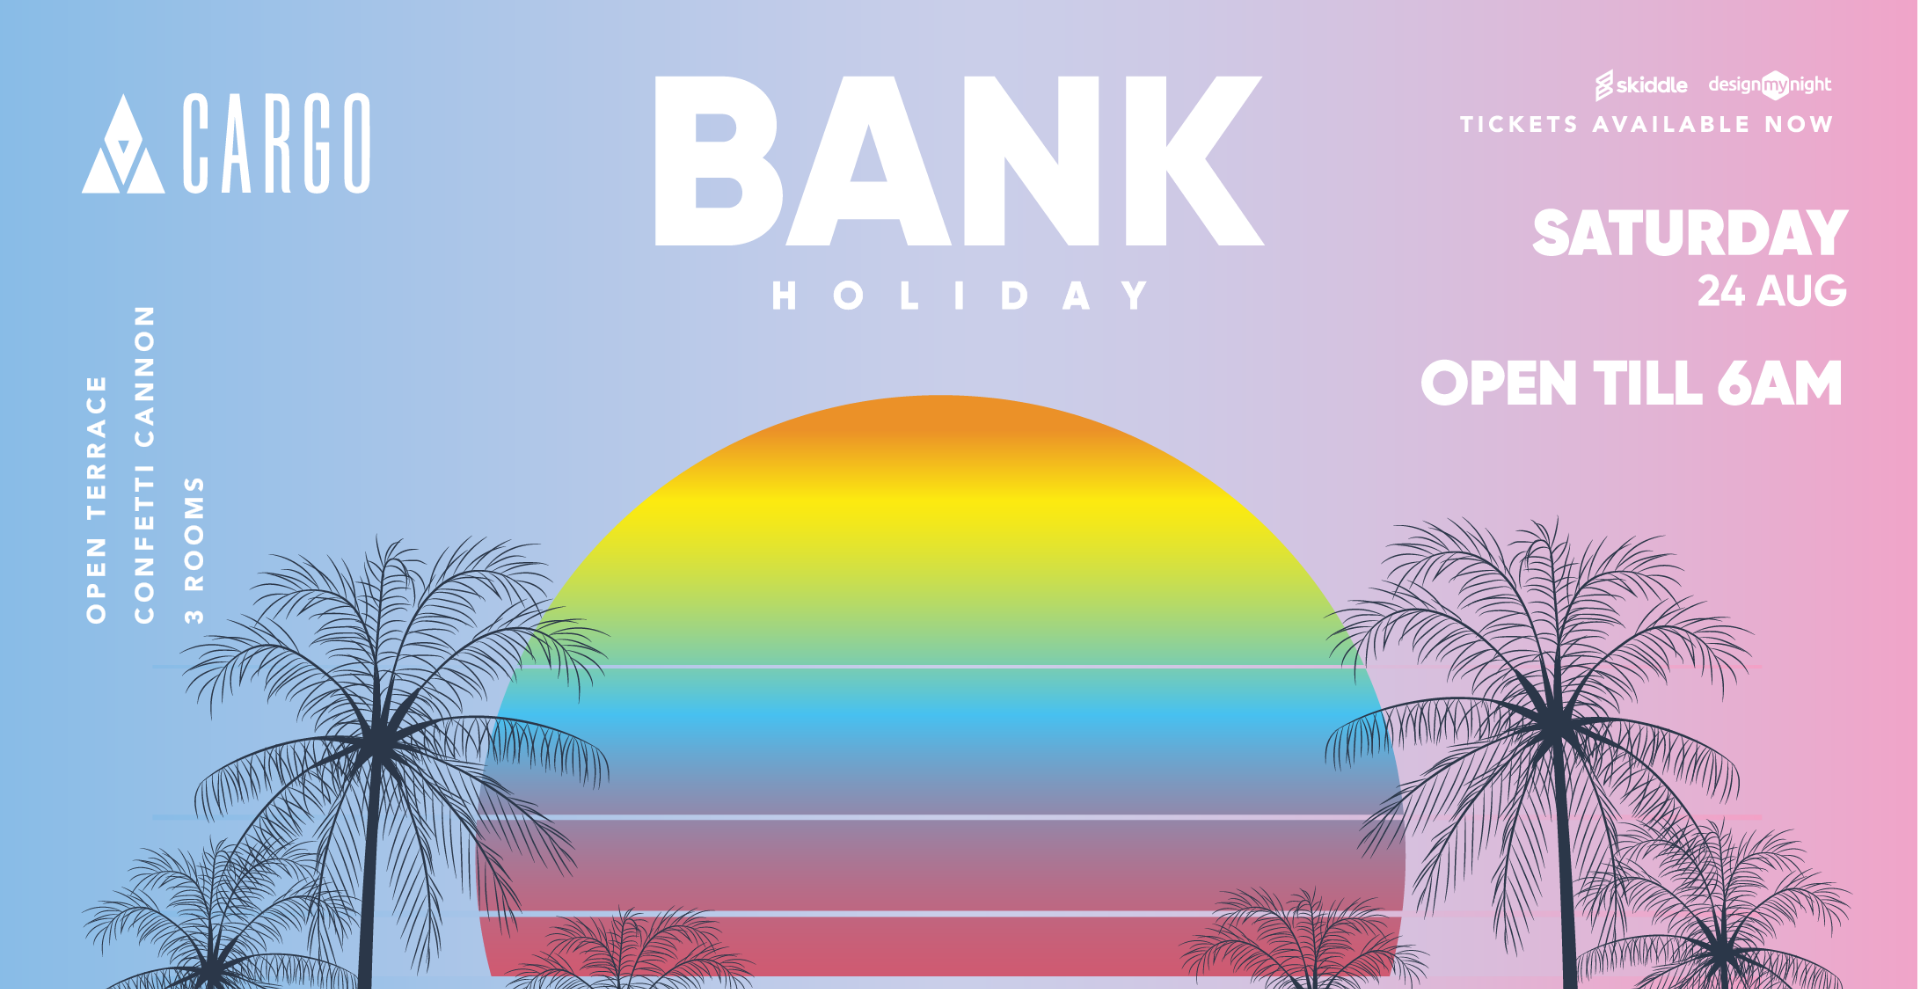 Bank Holiday Saturday at Cargo